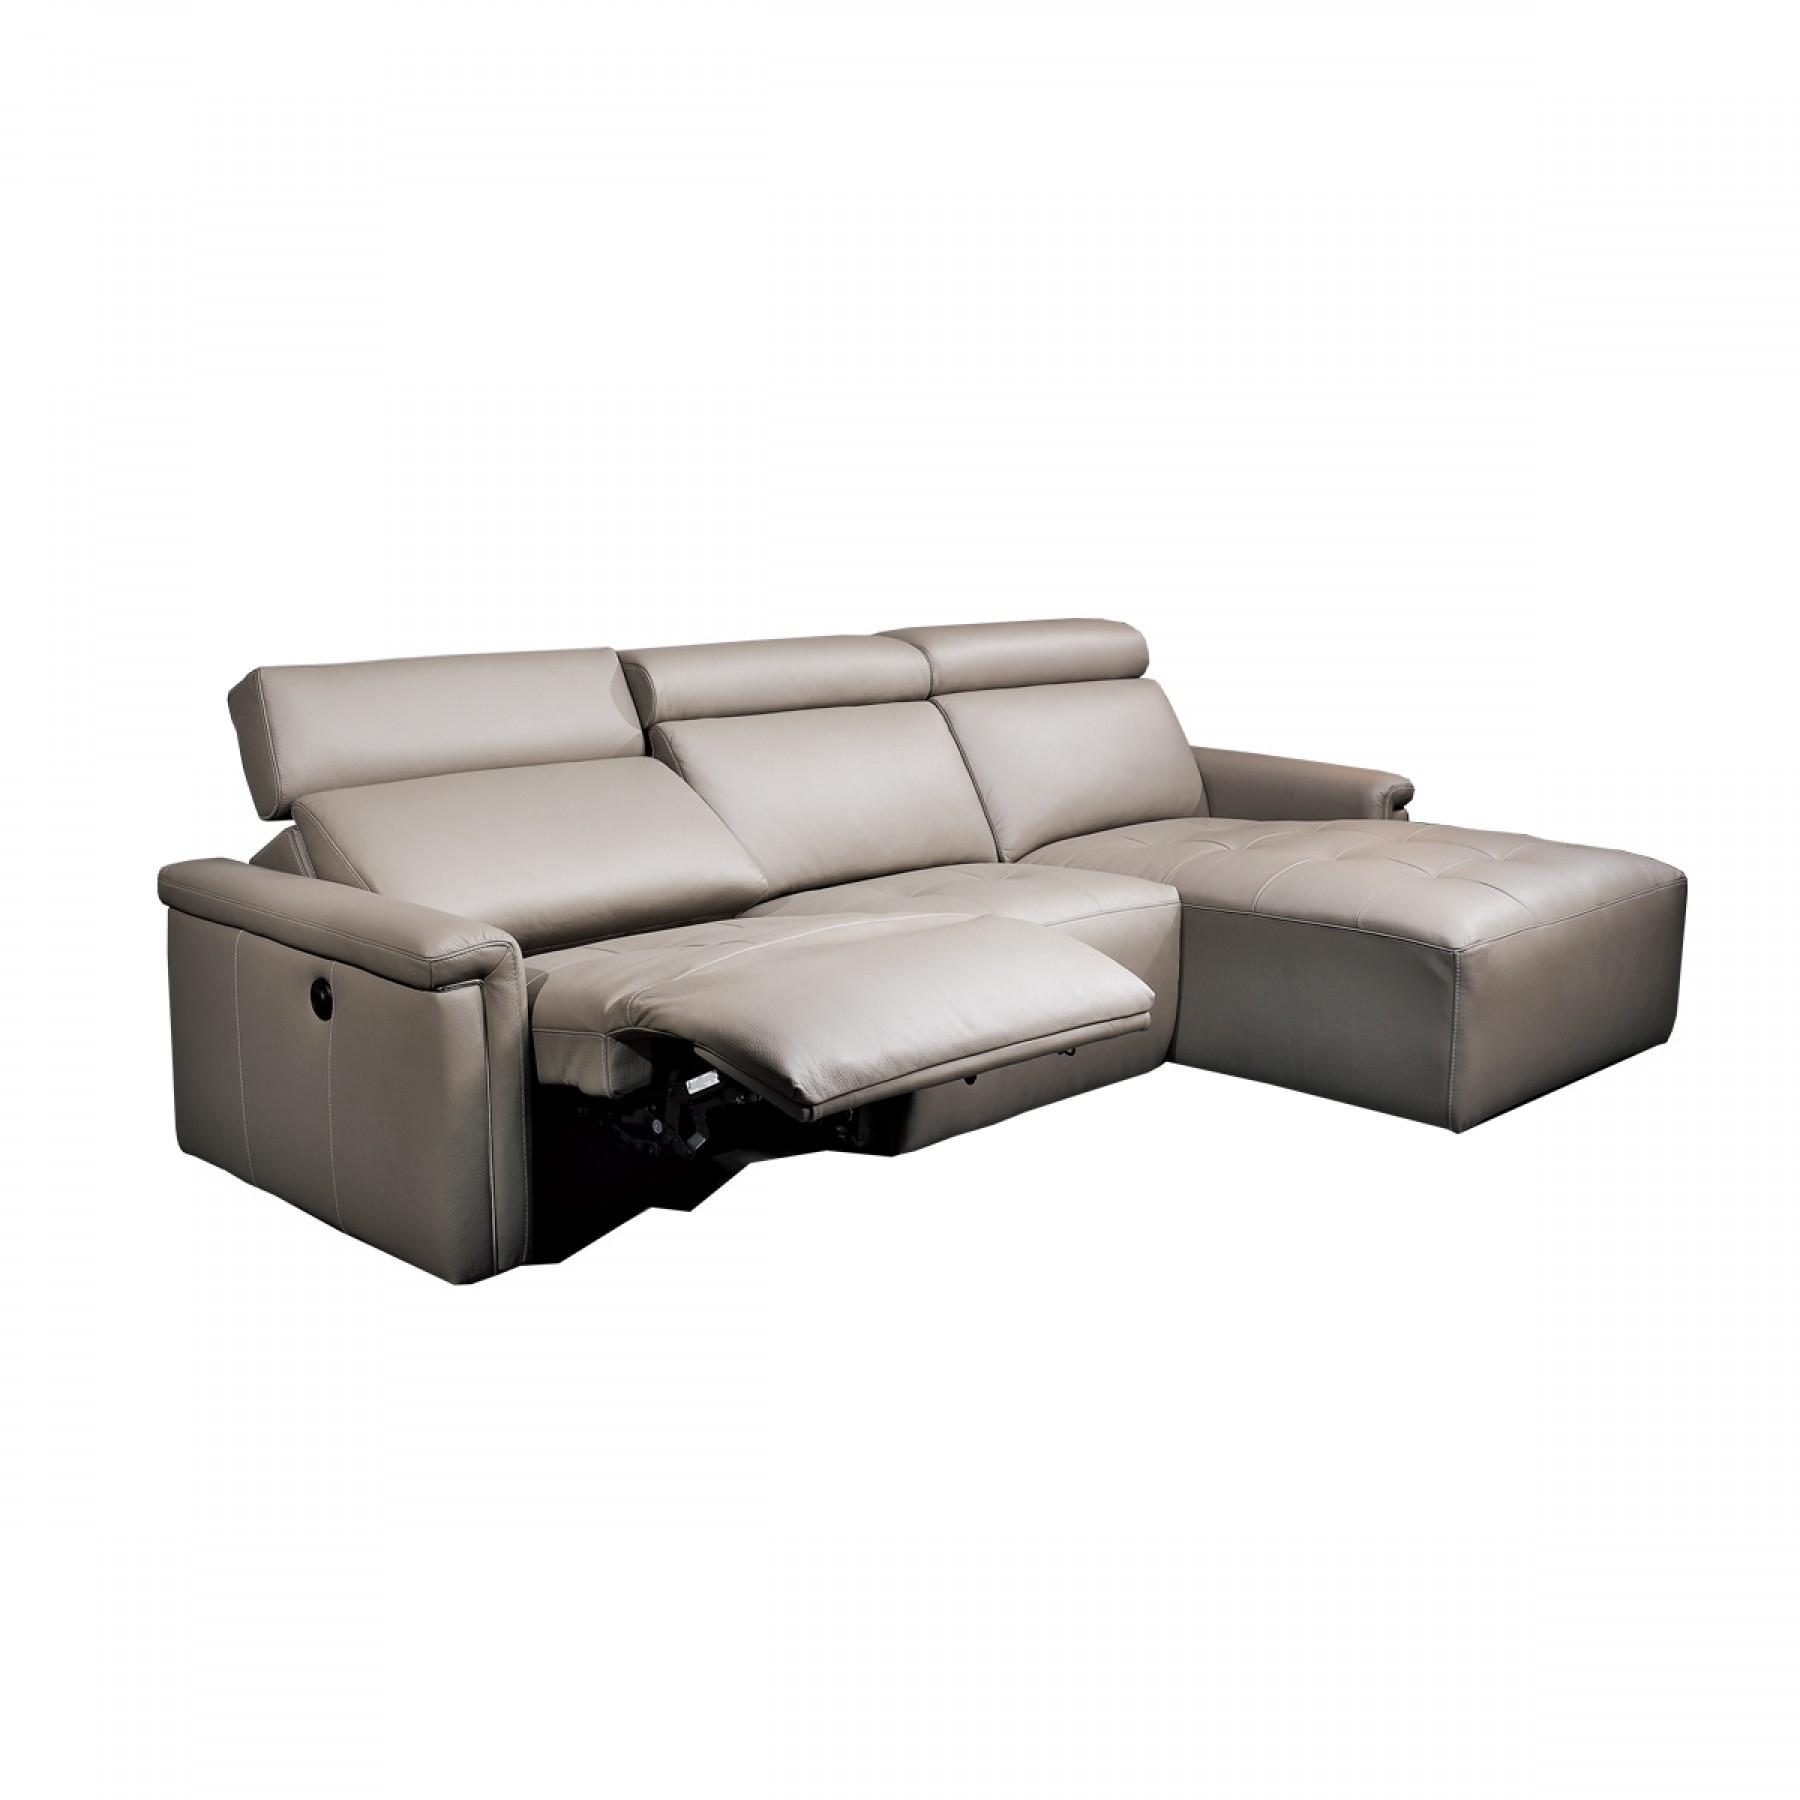 Casale Chaise With Recliner – Beyond Furniture Pertaining To Sofa Lounge Chairs (View 12 of 15)